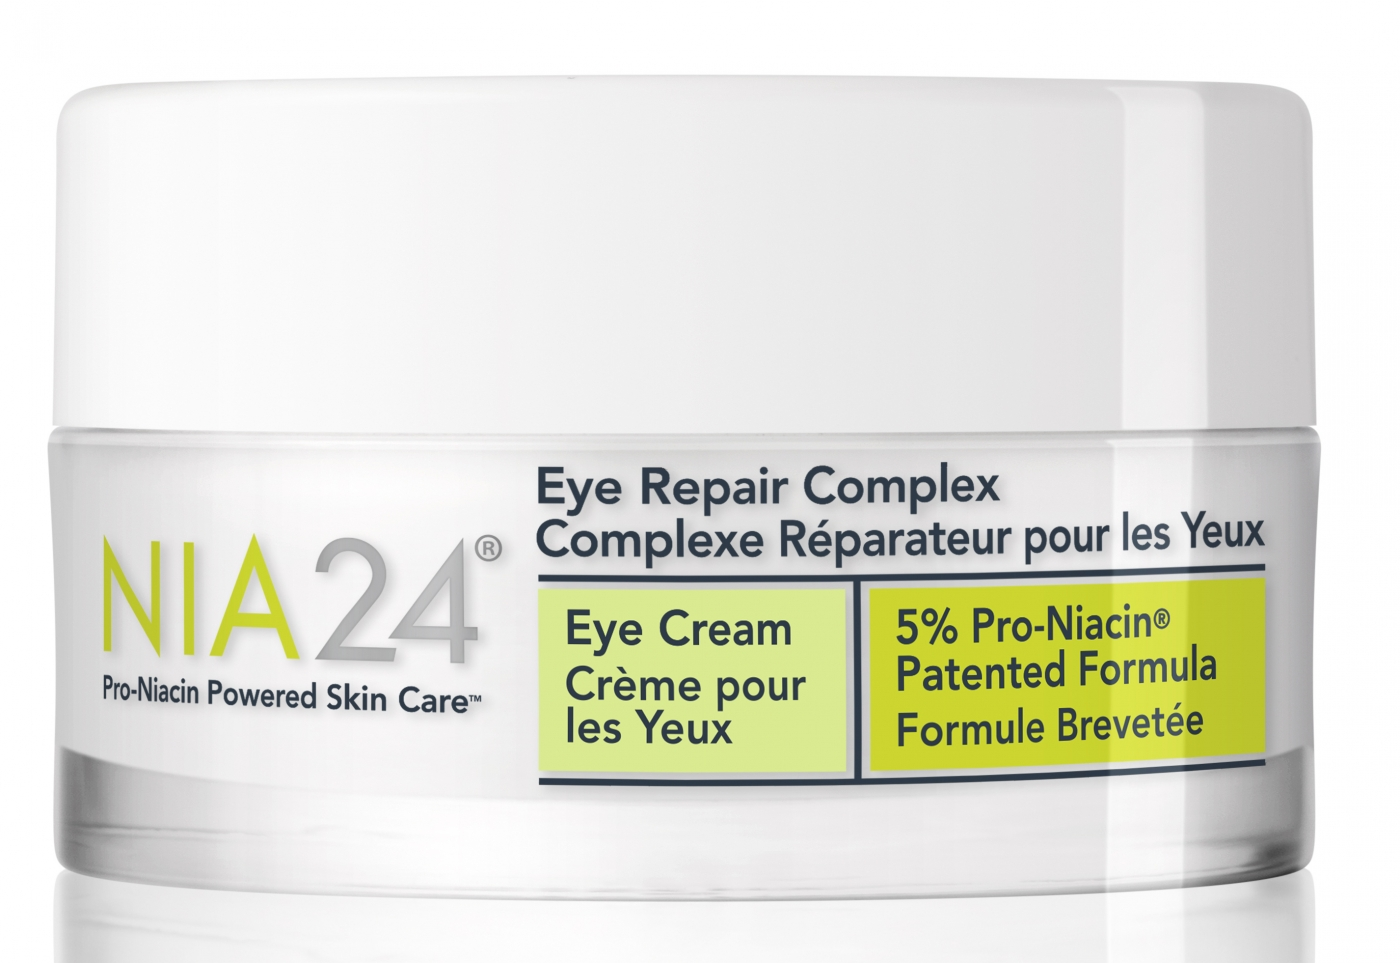 NIA24 Updates Roster Of Products - HAPPI